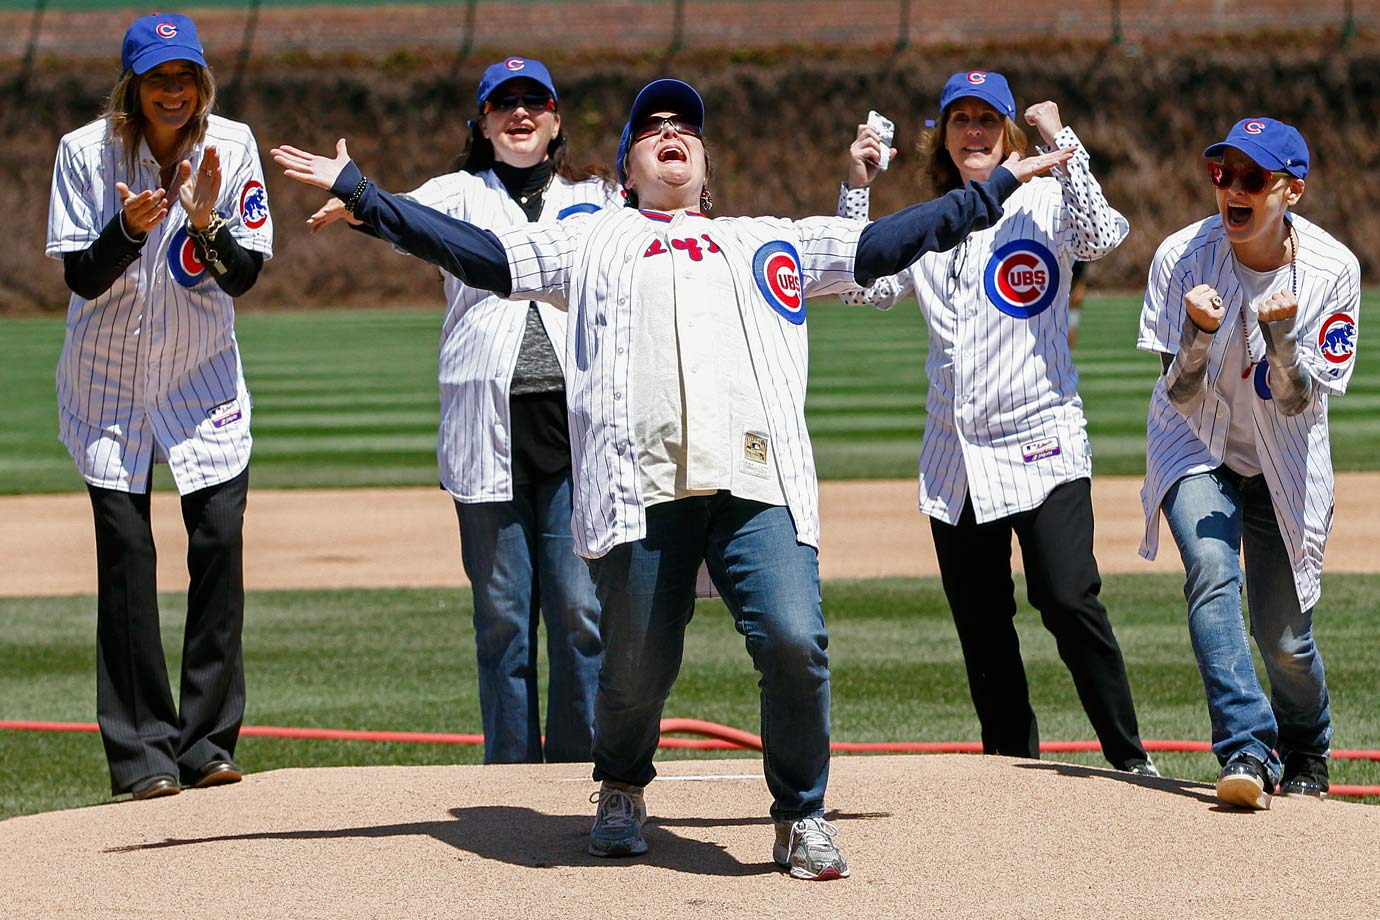 May 1 at Wrigley Field in Chicago